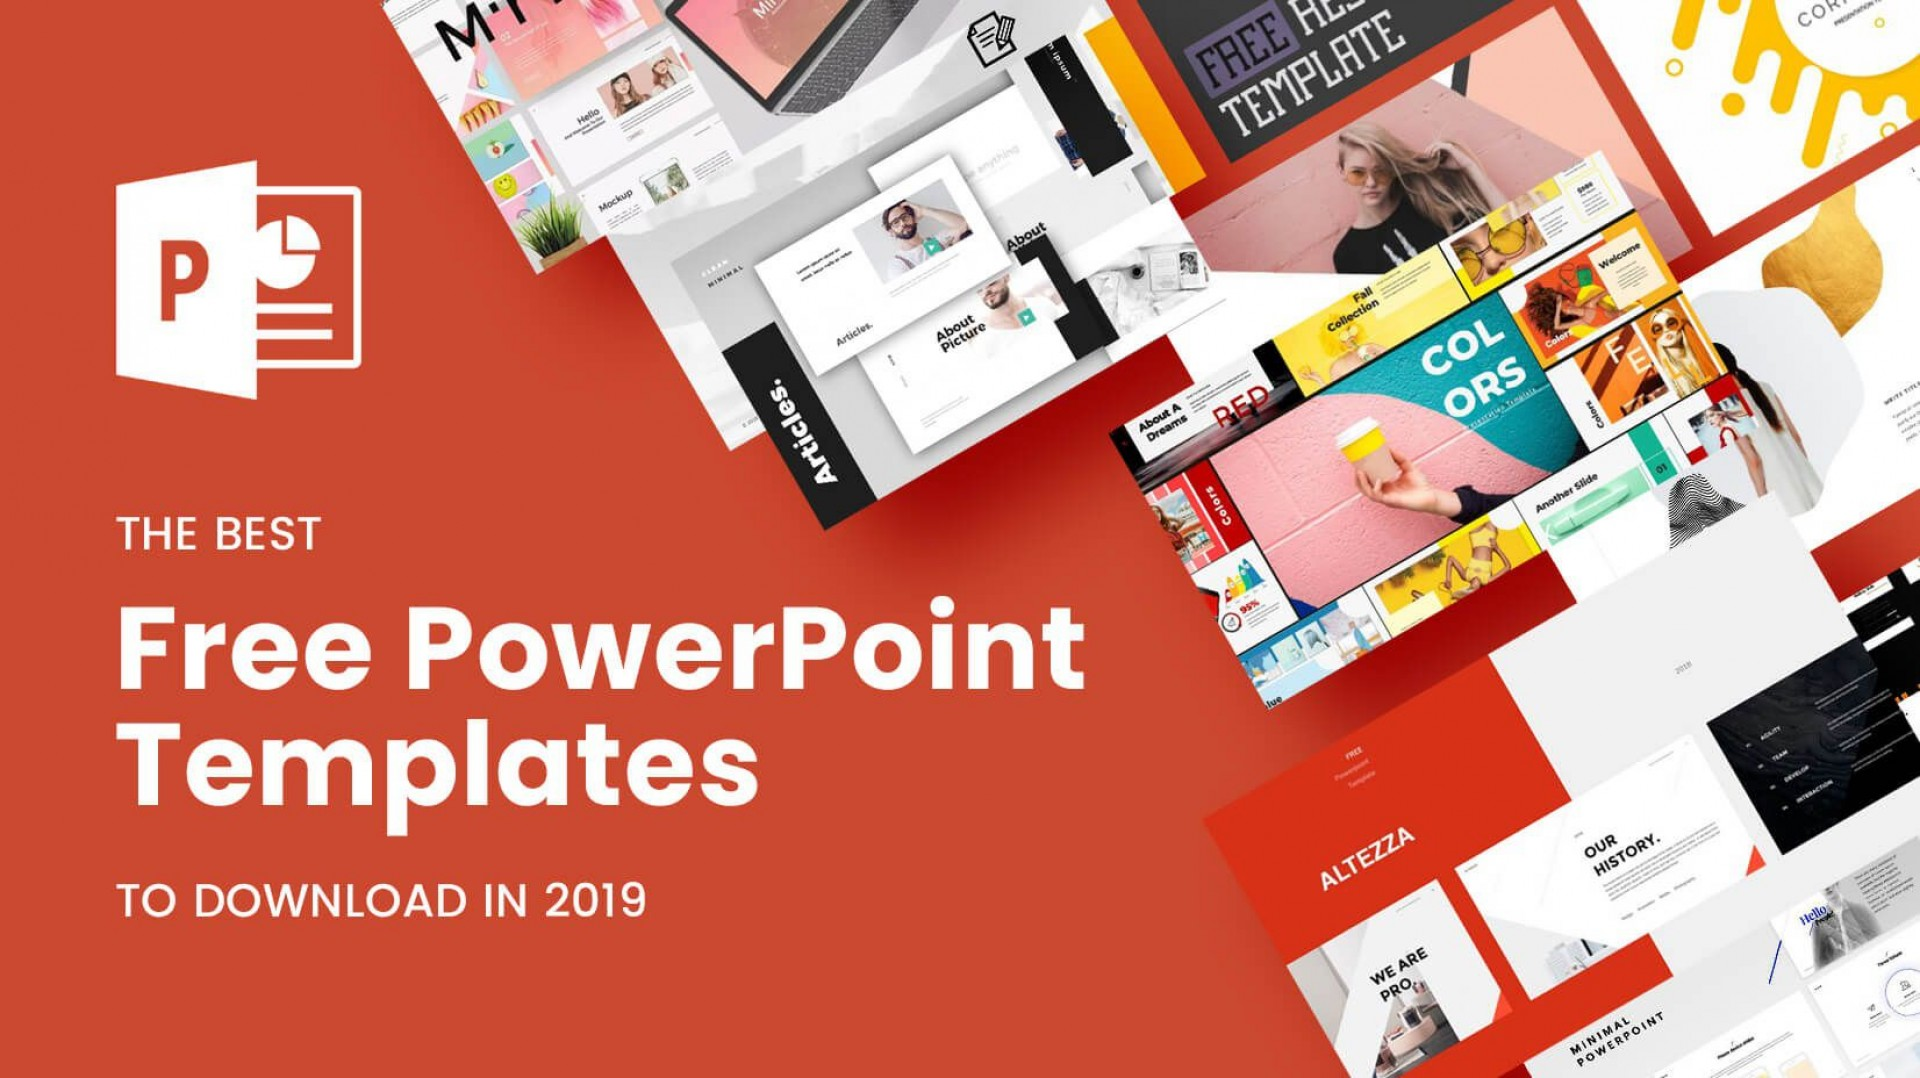 009 Unusual Professional Ppt Template Free Download High Resolution  Microsoft 2017 Powerpoint Presentation 20191920